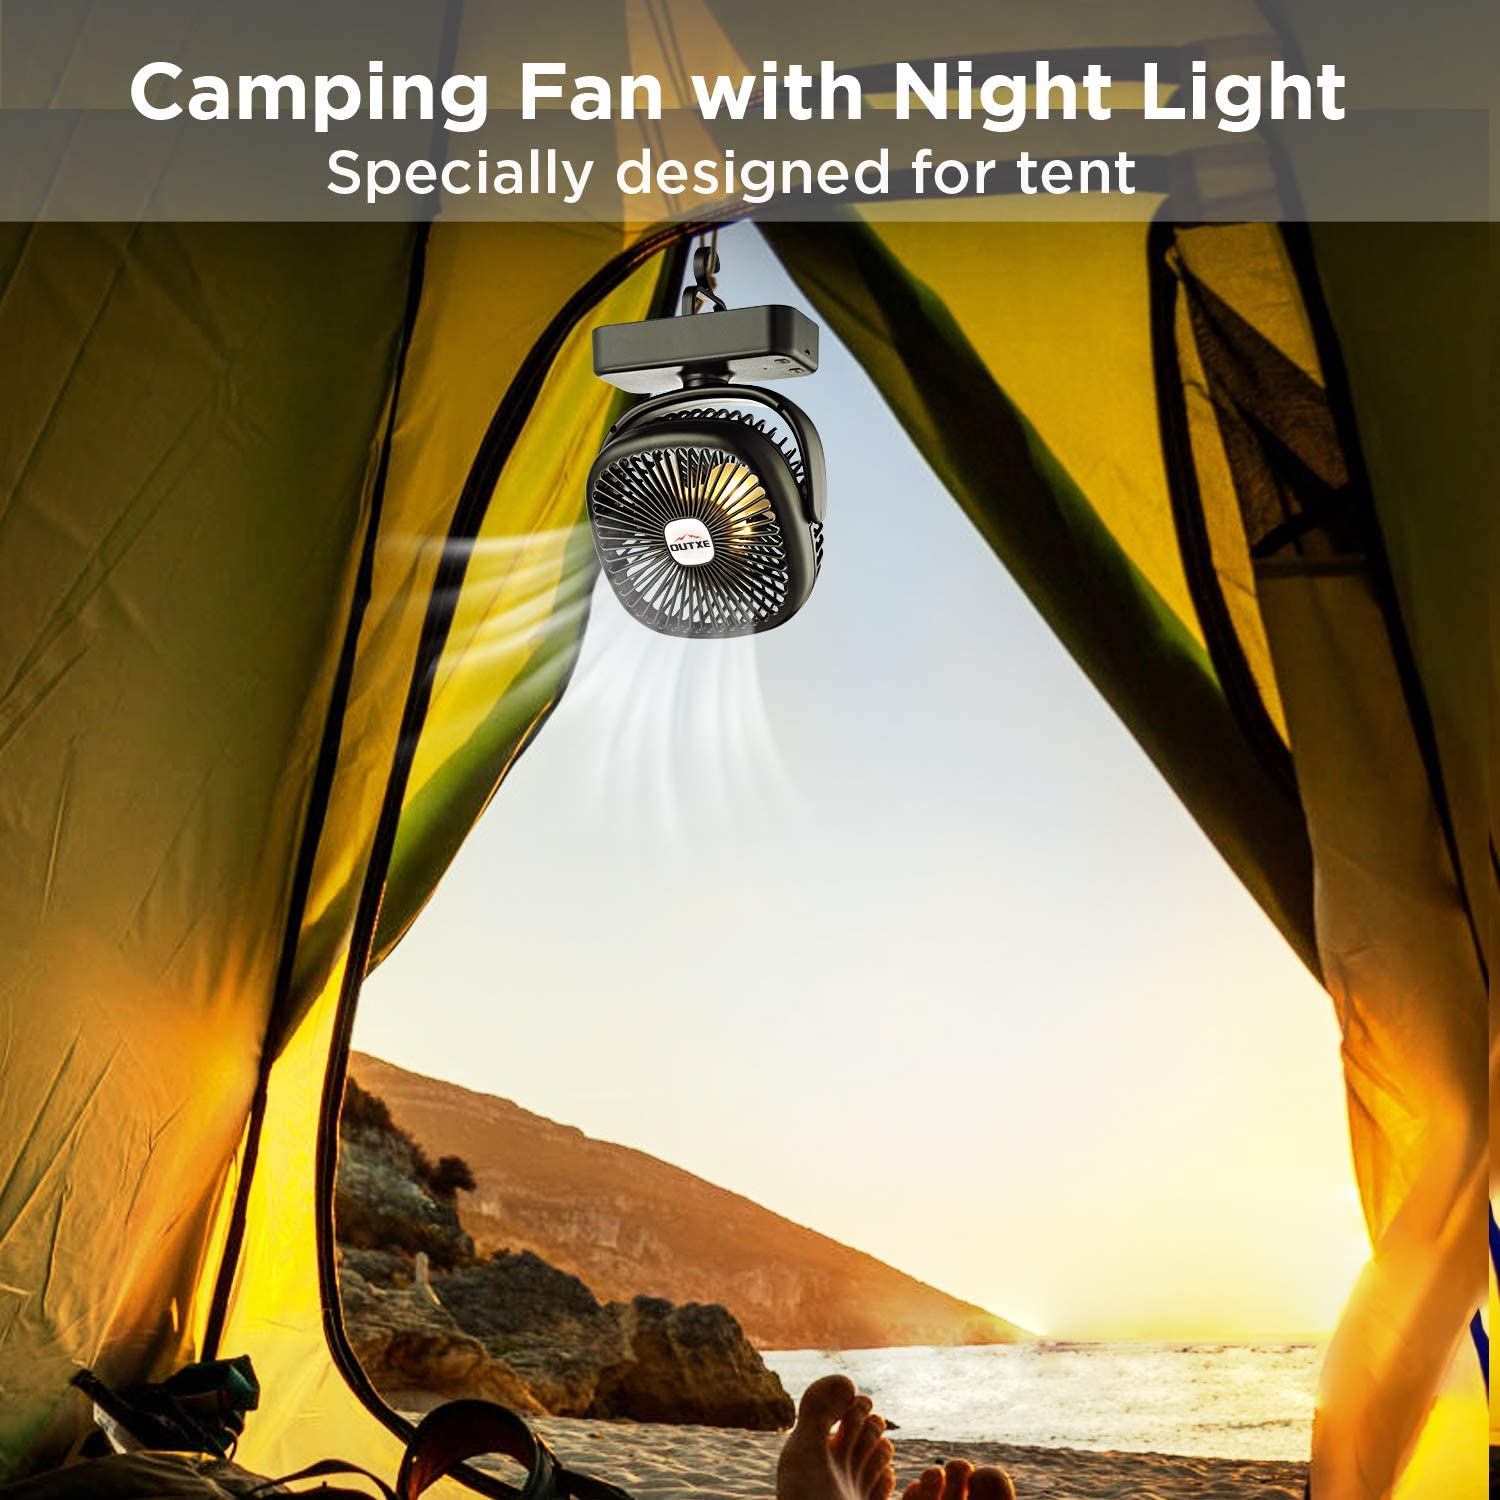 OUTXE Camping Fan with Night Lights 4400mAh 5200mAh USB Rechargeable Tent Fan Portable USB Camping Fan Persona Fan